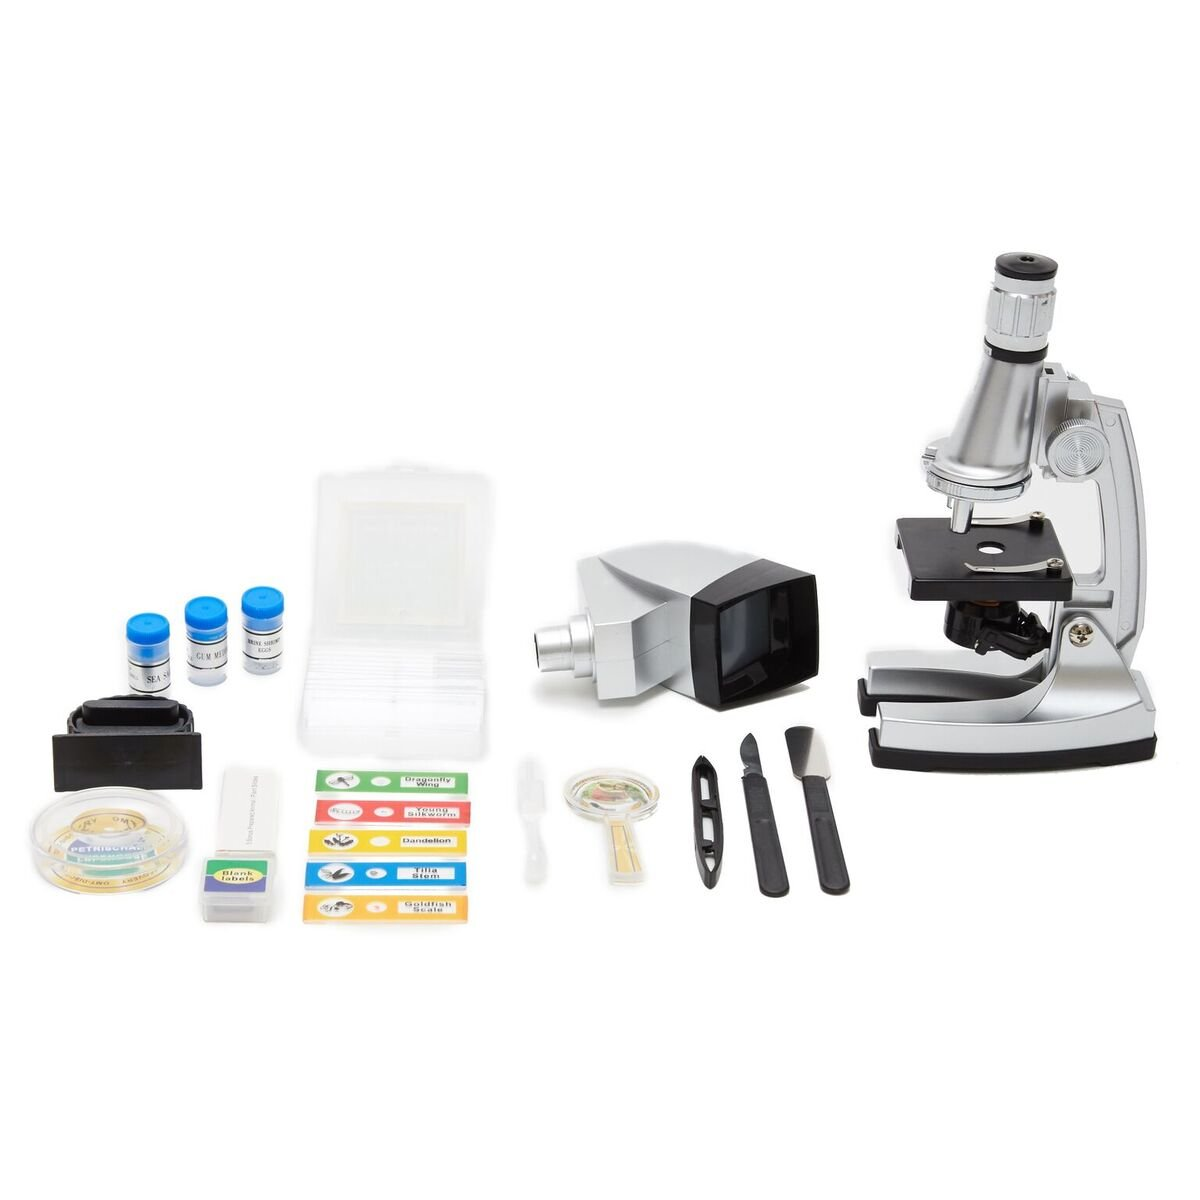 EB Trading LLC Microscope Kit with 6 Magnifications from 50x to 1200x, Includes 37 - Piece Accessory Set and Case, Best Top Pick of Microscopes For Beginners (5 Bonus Animal/Plant sides)